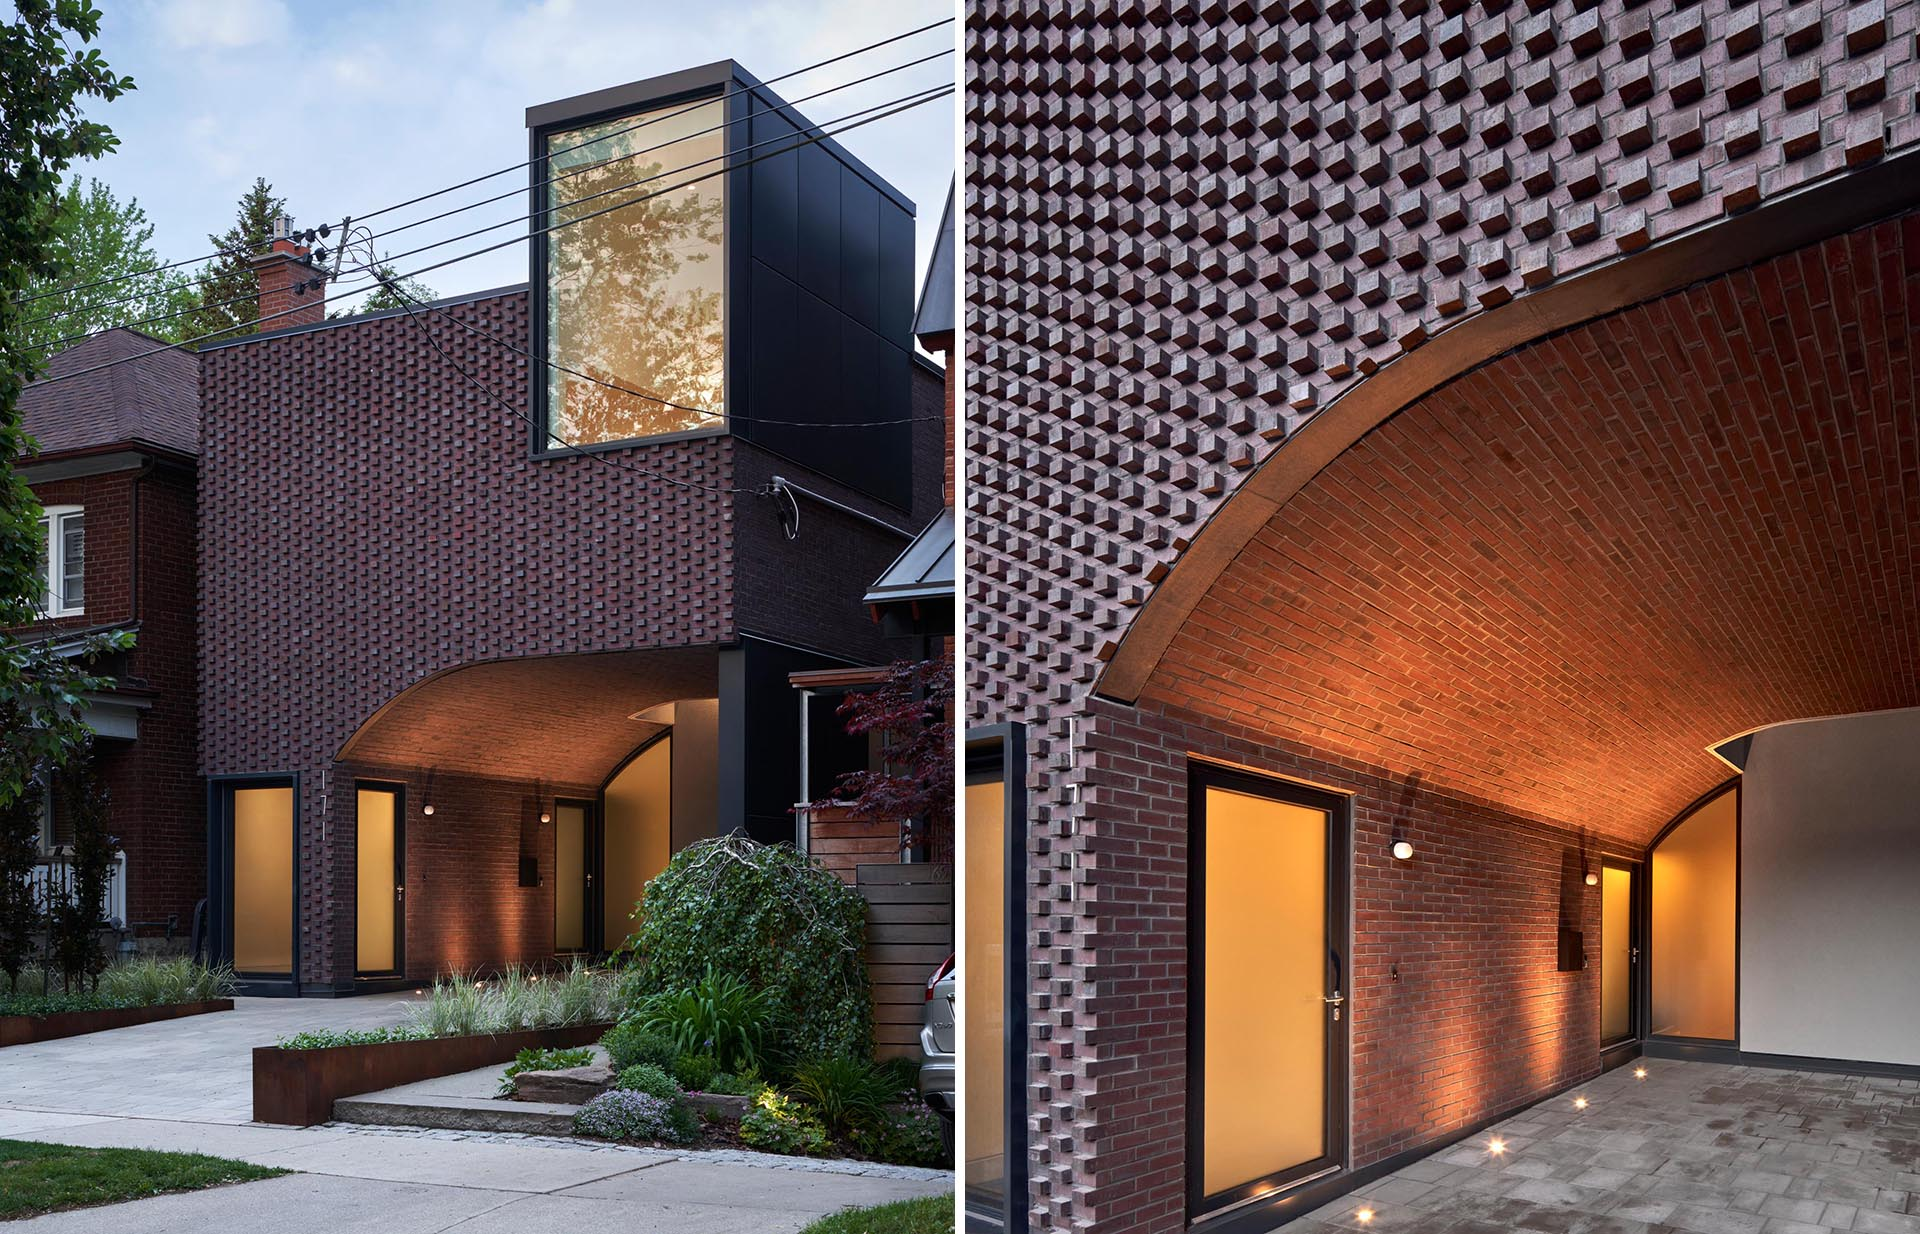 A Highly Textured Brick Exterior Was Designed For This Modern House In Toronto